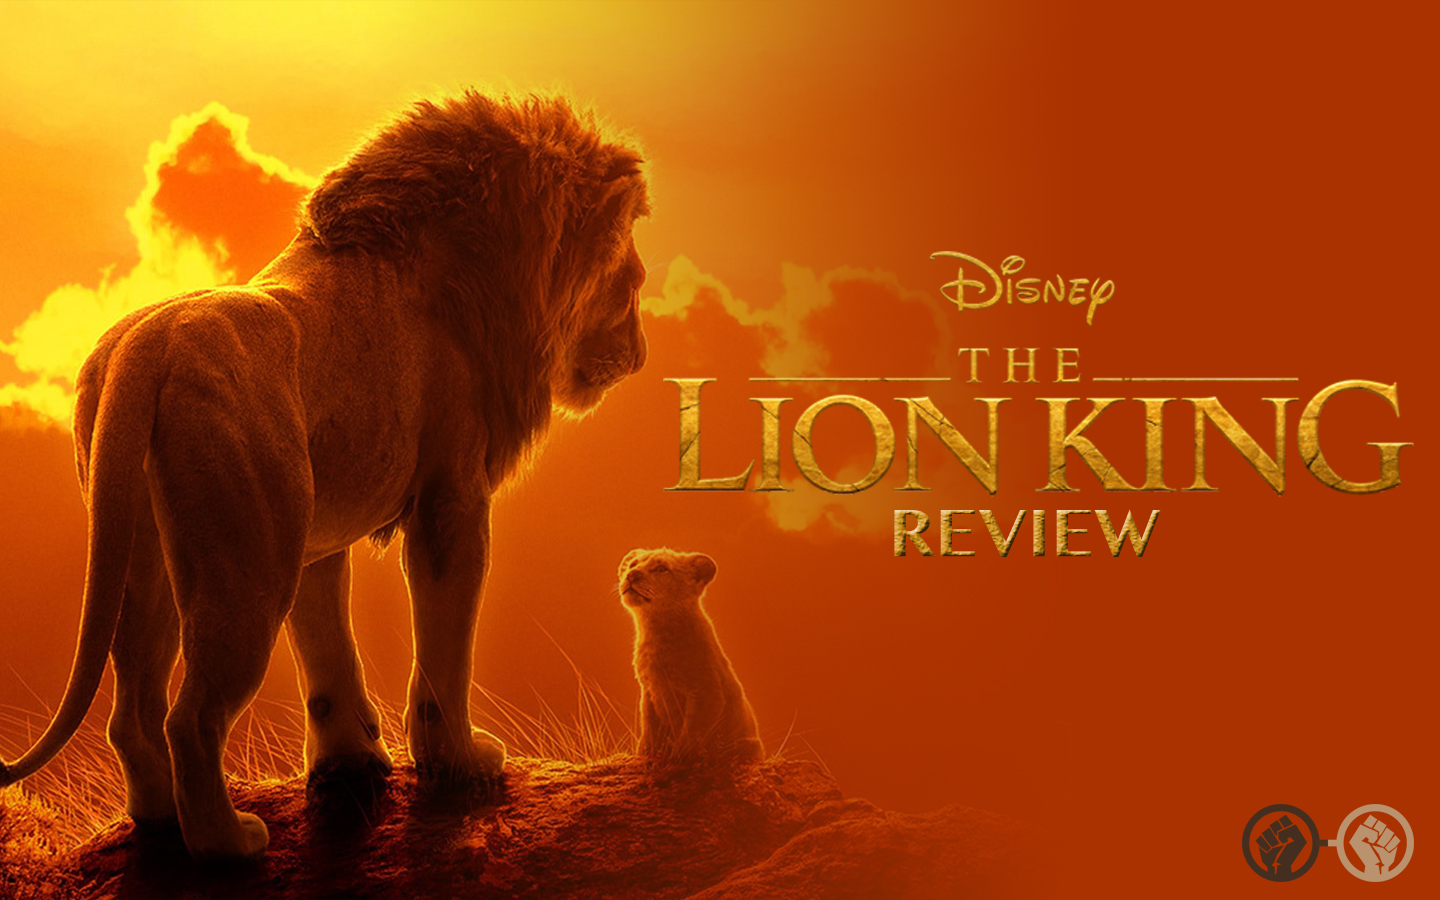 - The Lion King' Captures The Spirit Of The Original While